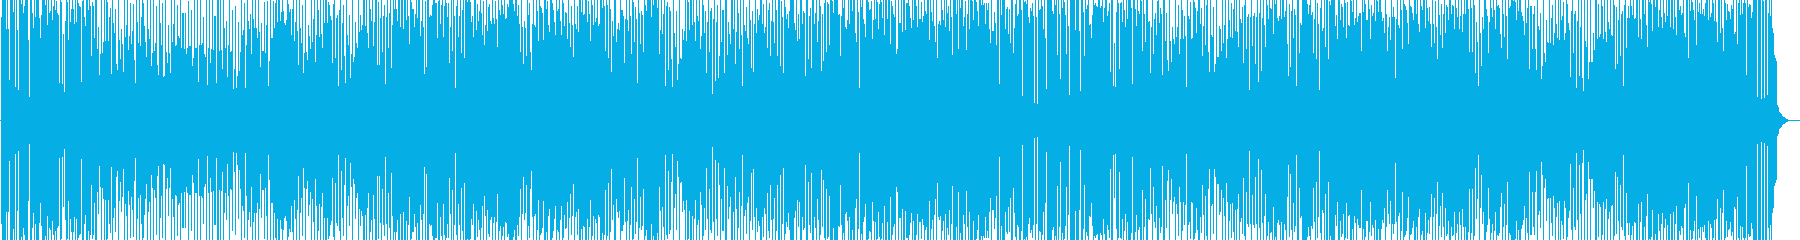 Bright and cheerful pleasant BGM's reproduced waveform